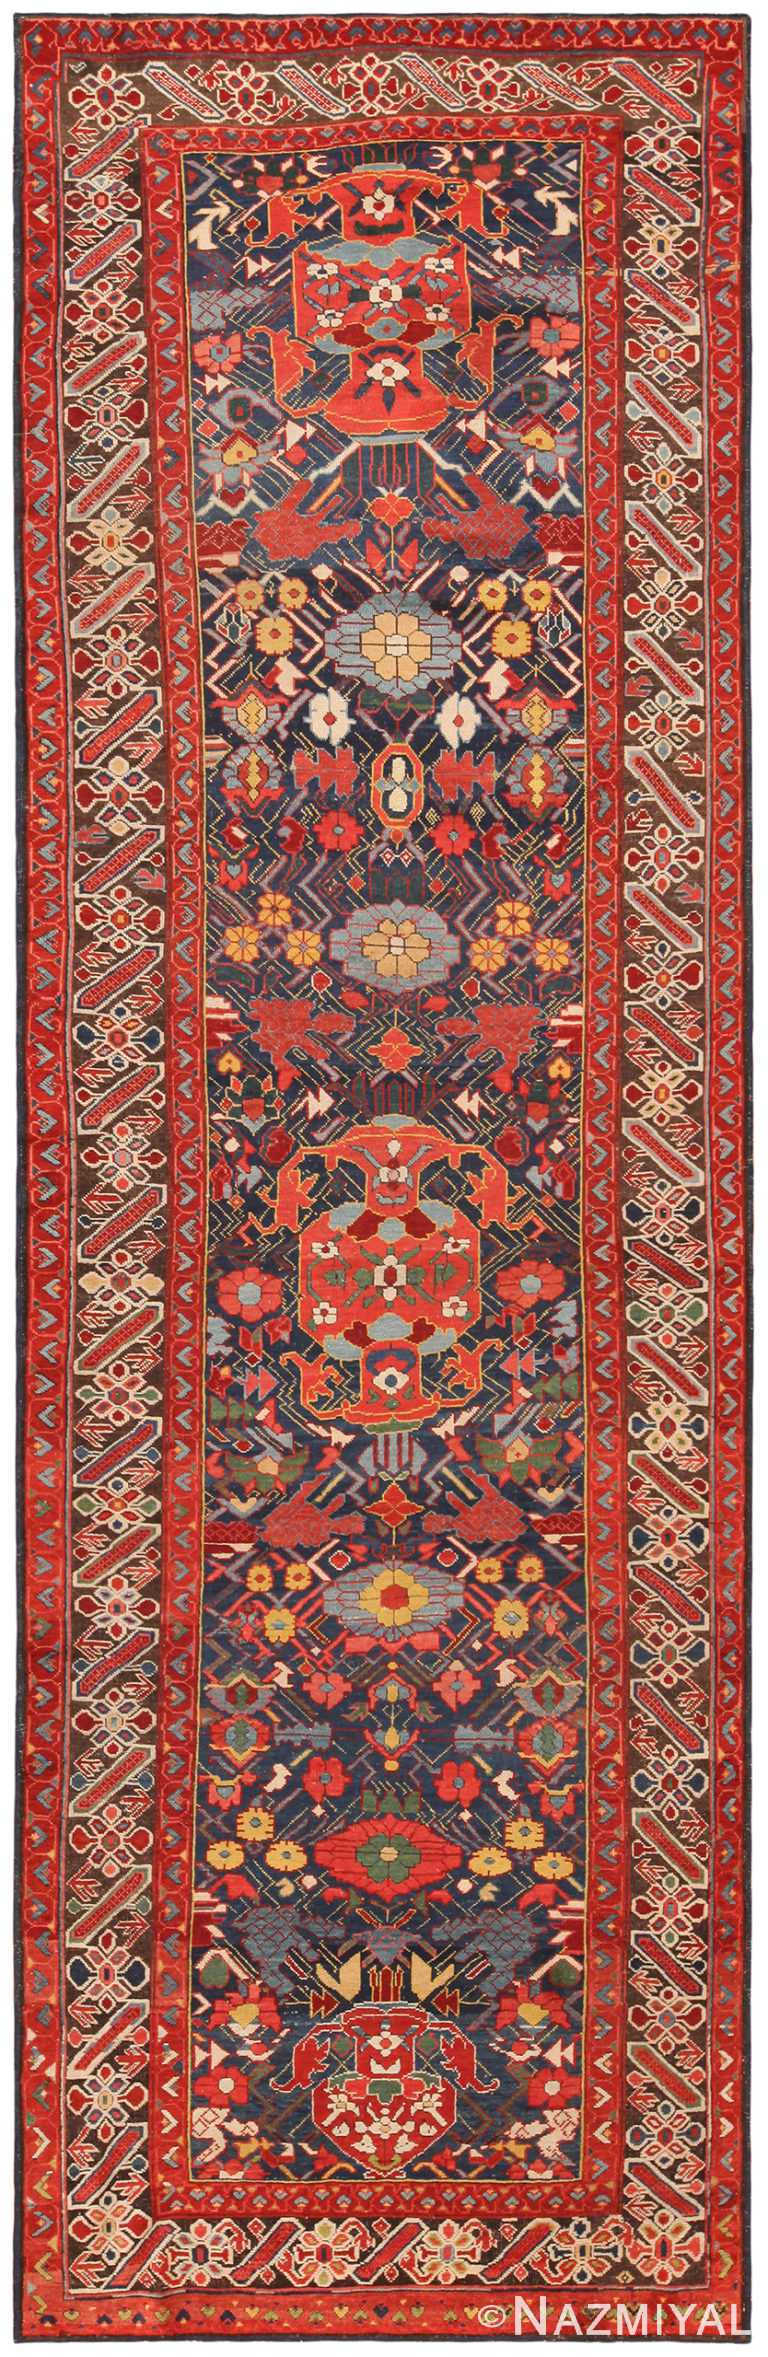 Marvelous Antique Caucasian Chi Chi Runner 71166 by Nazmiyal Antique Rugs